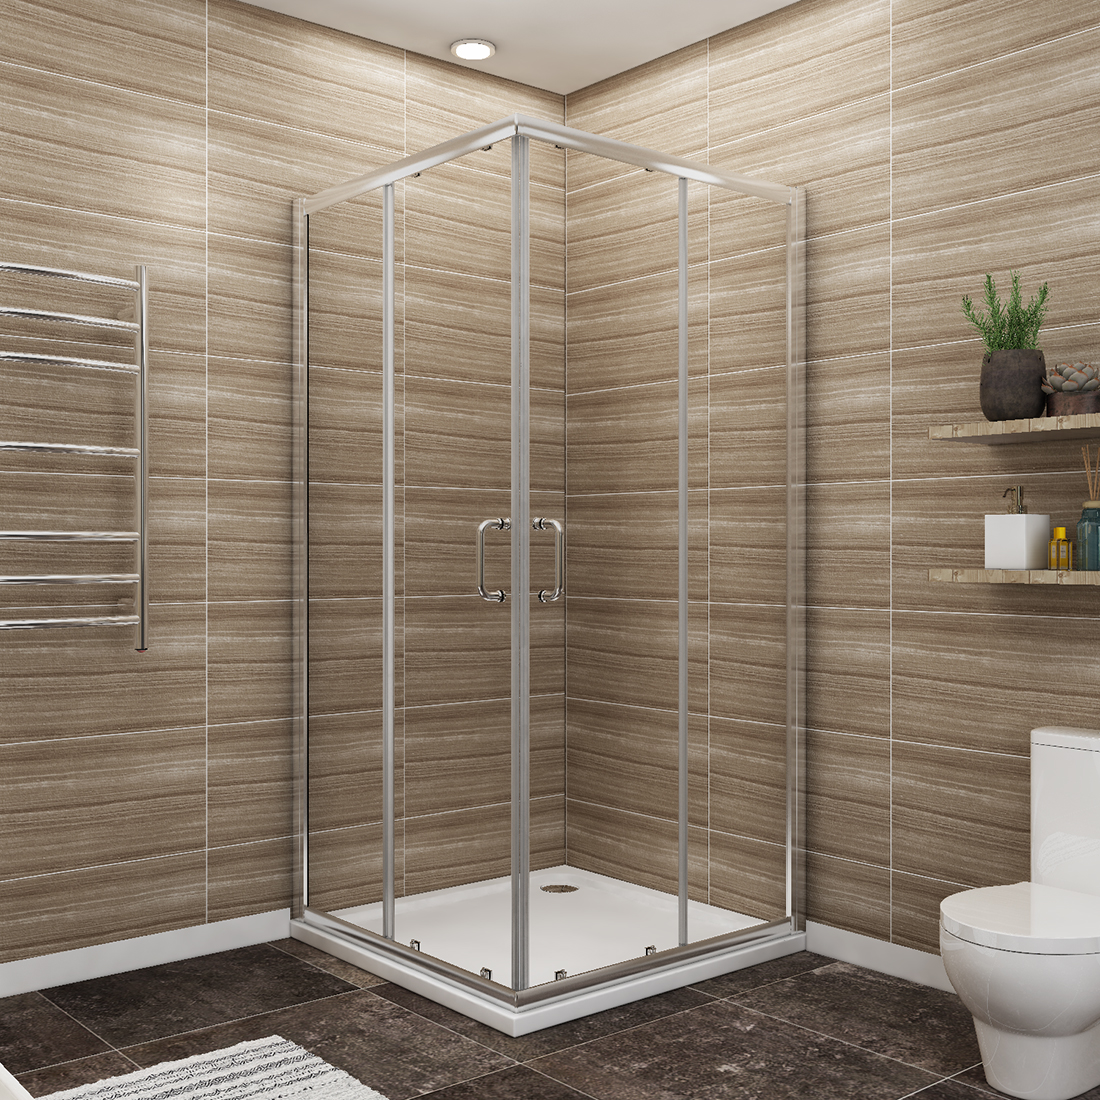 "Sunny Shower 36"" X 36"" X 72"" Double Opening Corner Shower Doors 1/4"" Clear Glass Shower Enclosure with Magnetic Waterproof Seal Strip/Chrome Finish/  Base Not Inlcuded"